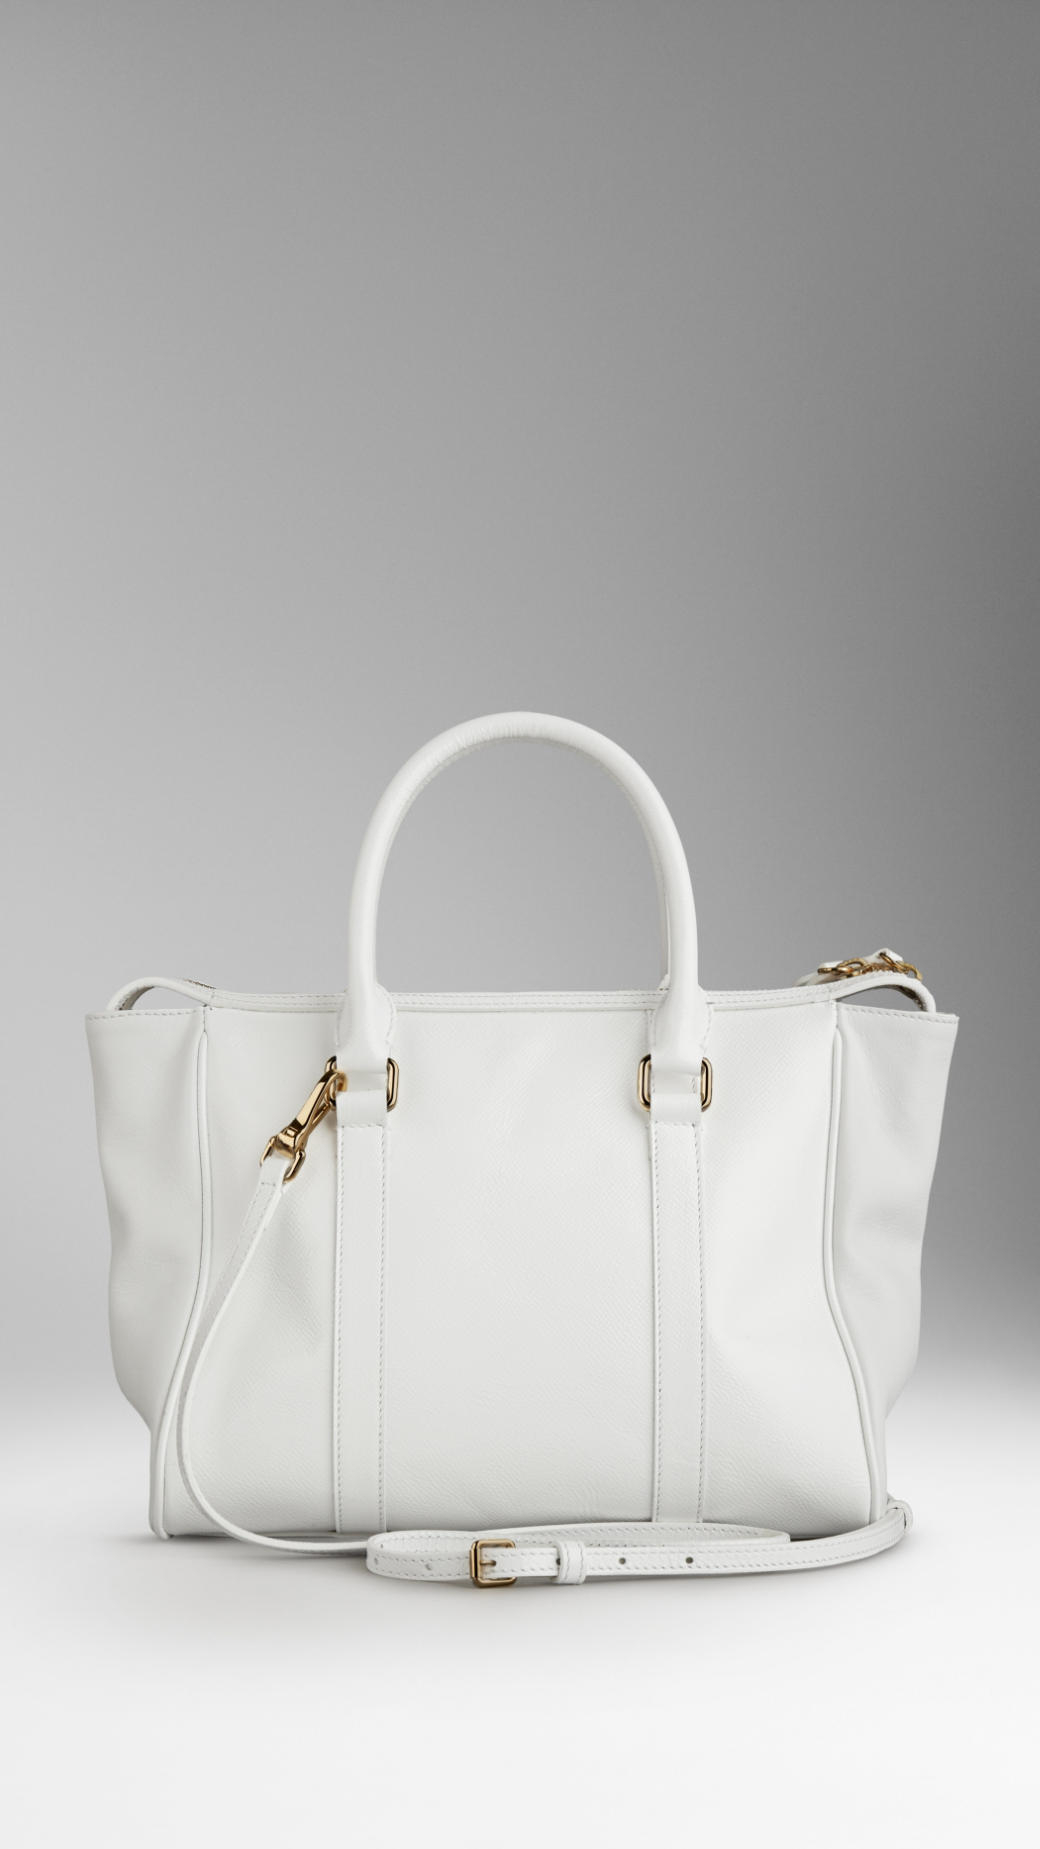 bf5c3c40327 Lyst - Burberry Medium Patent London Leather Tote Bag in White